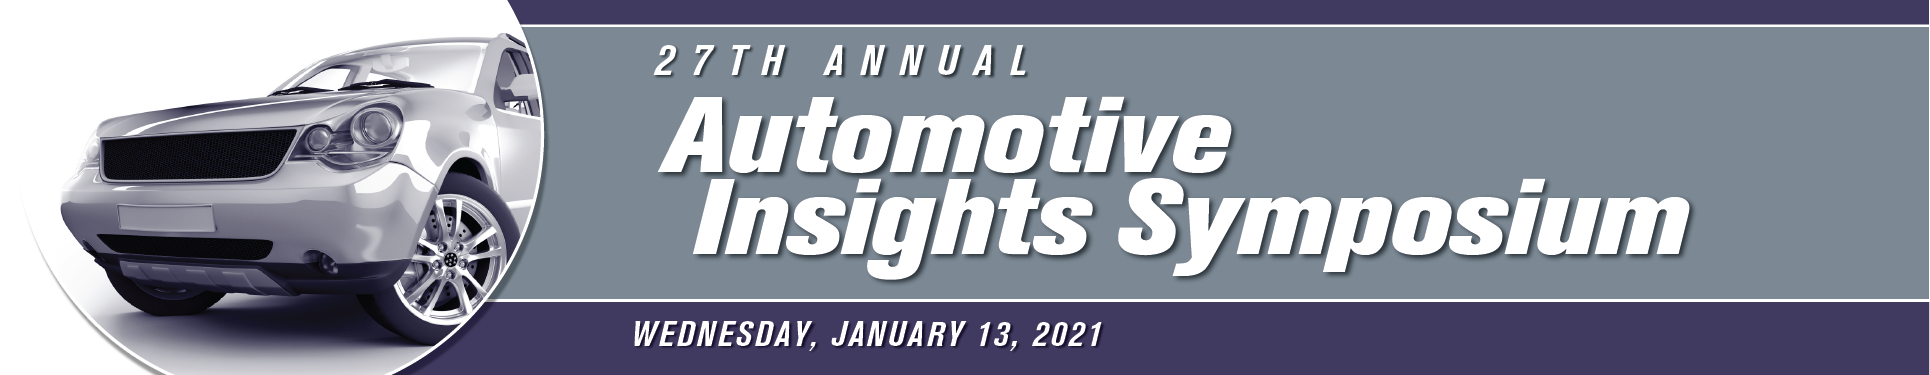 Banner image for the 2021 Automotive Insights Symposium